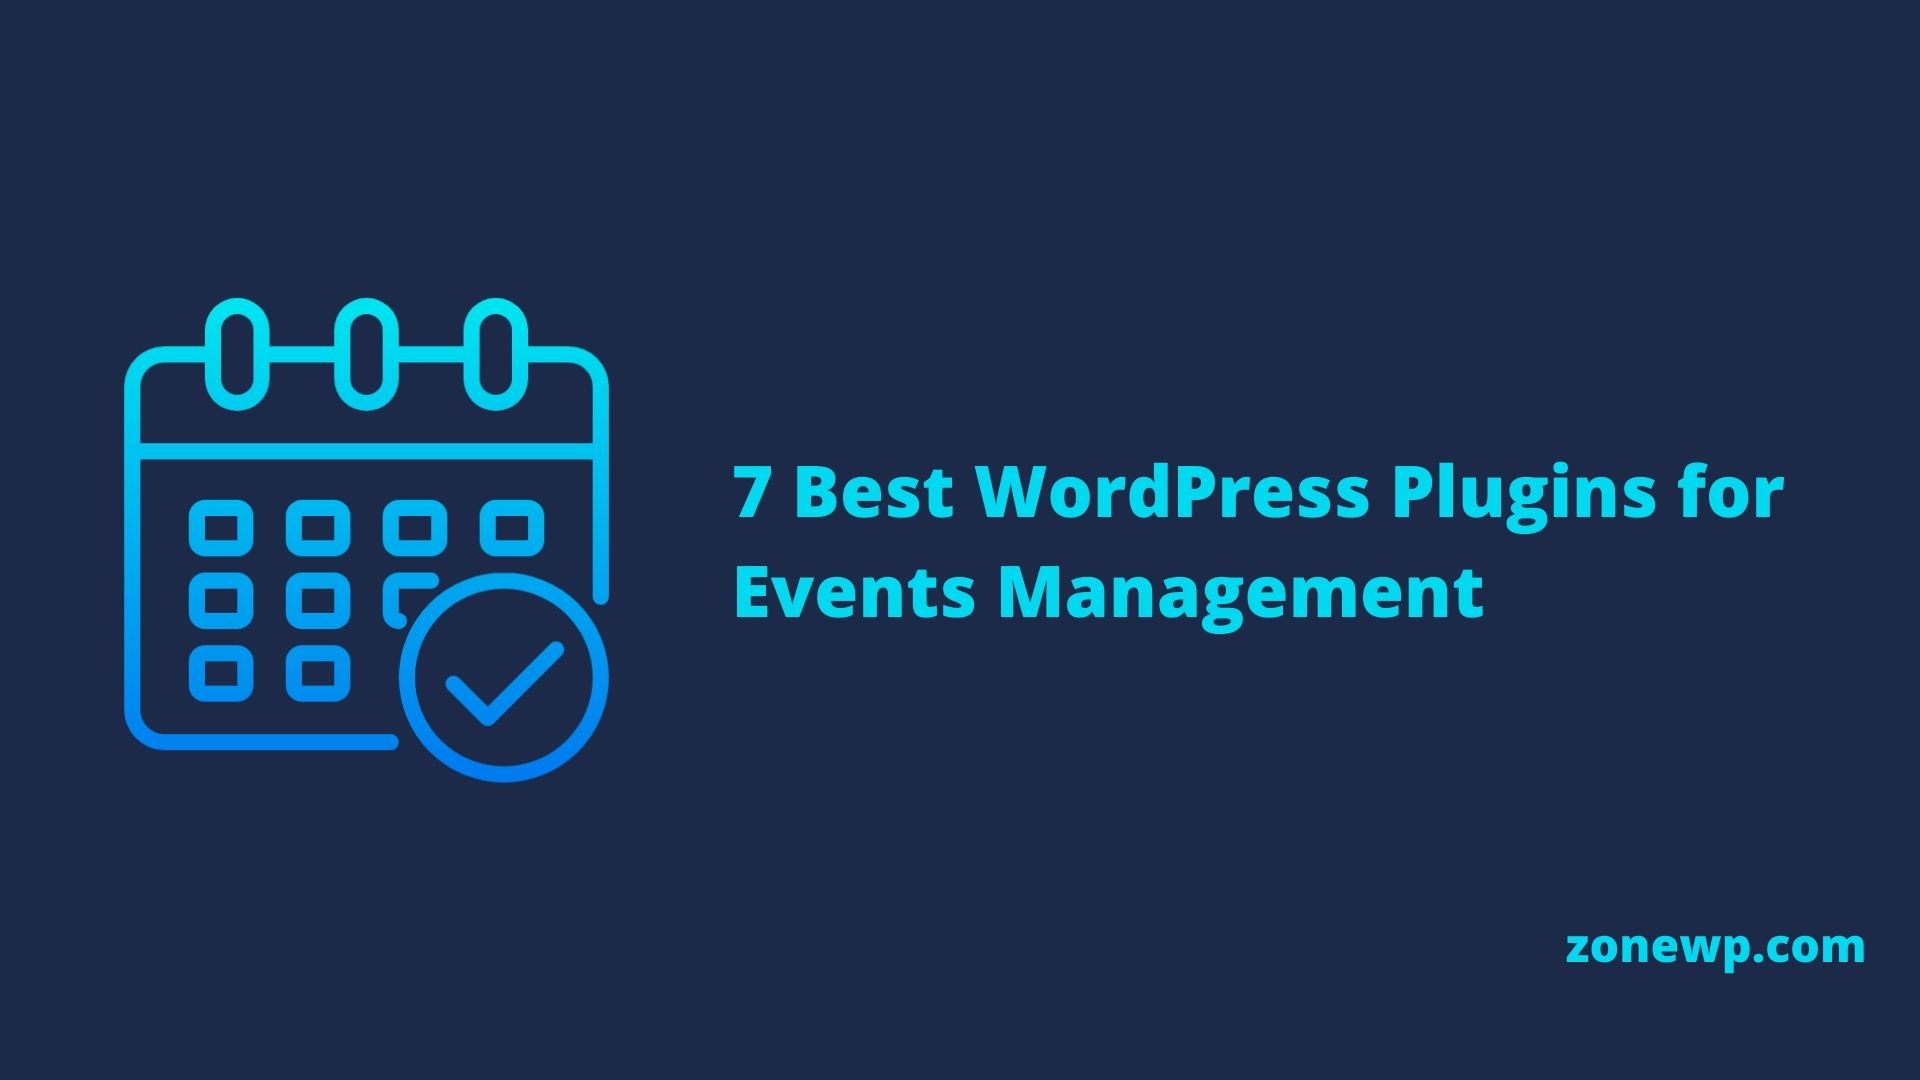 7 Best WordPress Plugins for Events Management